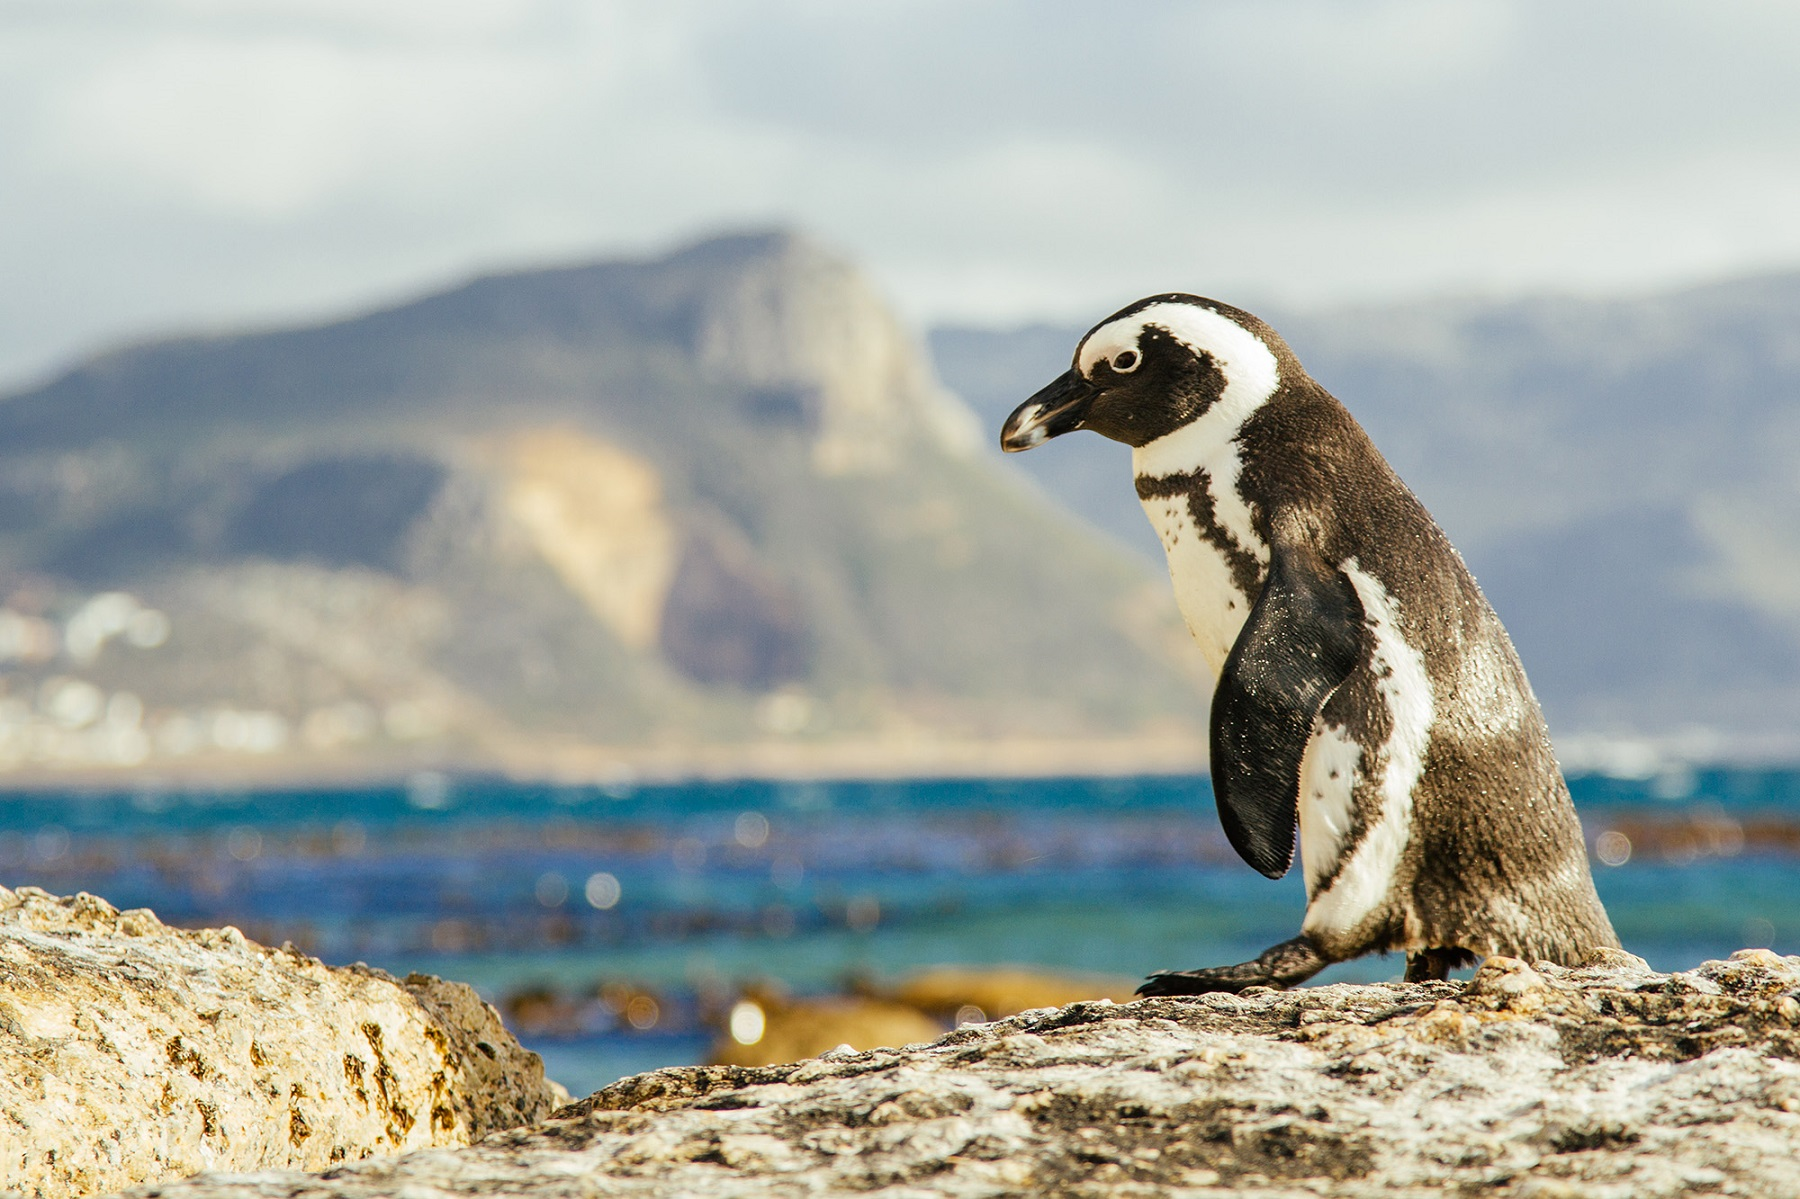 places-to-visit-and-things-to-do-in-cape-town-for-honeymoon-leamigo